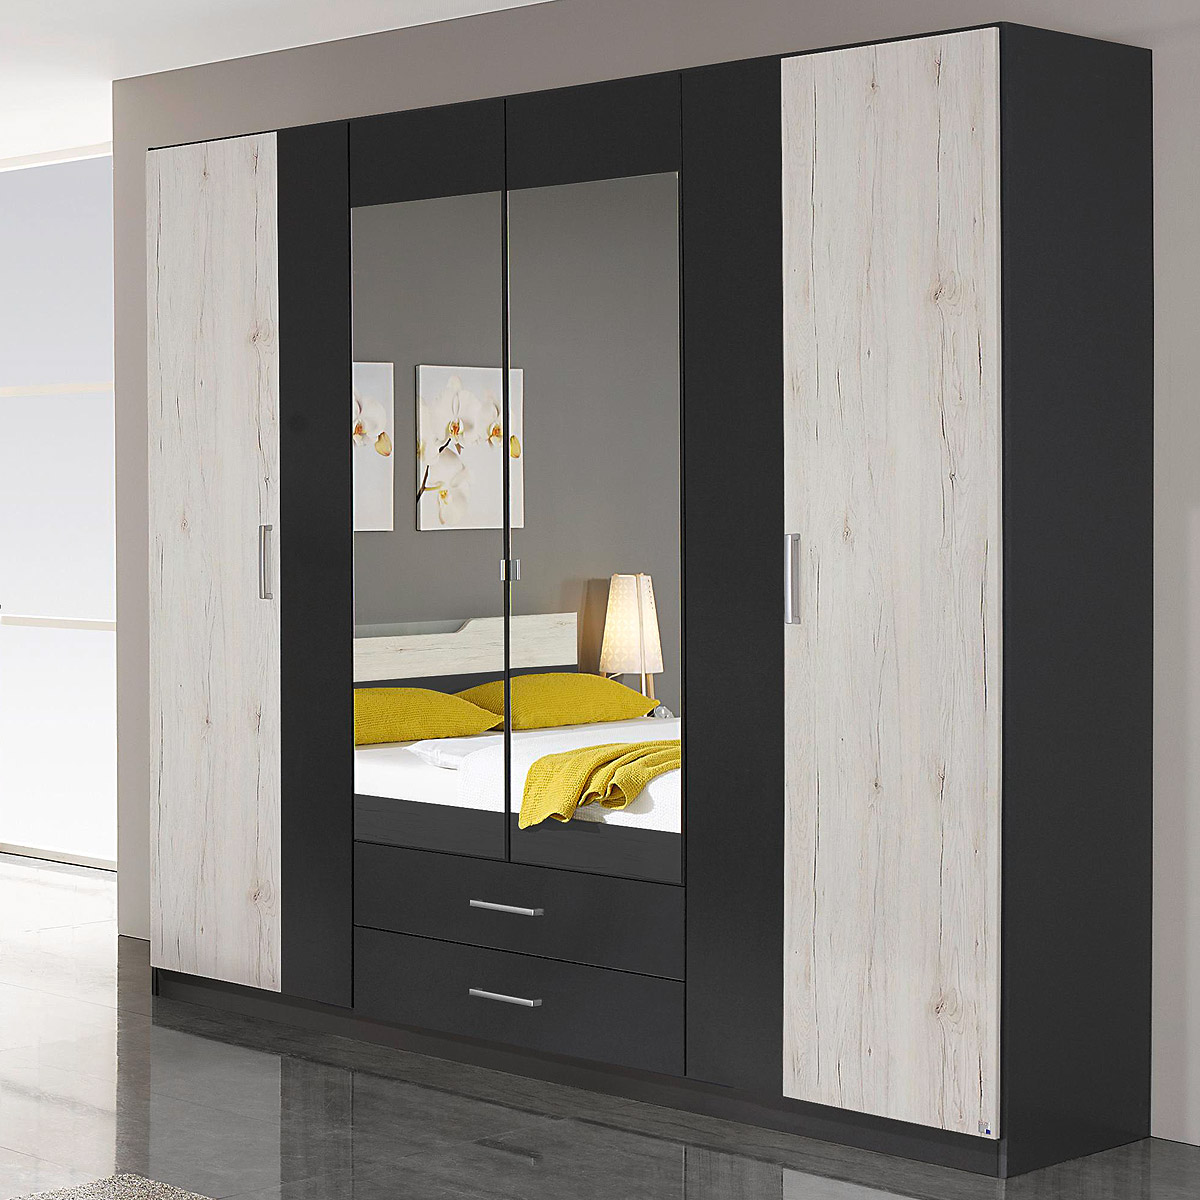 kleiderschrank cartagena schrank grau metallic eiche sanremo wei 226 cm ebay. Black Bedroom Furniture Sets. Home Design Ideas